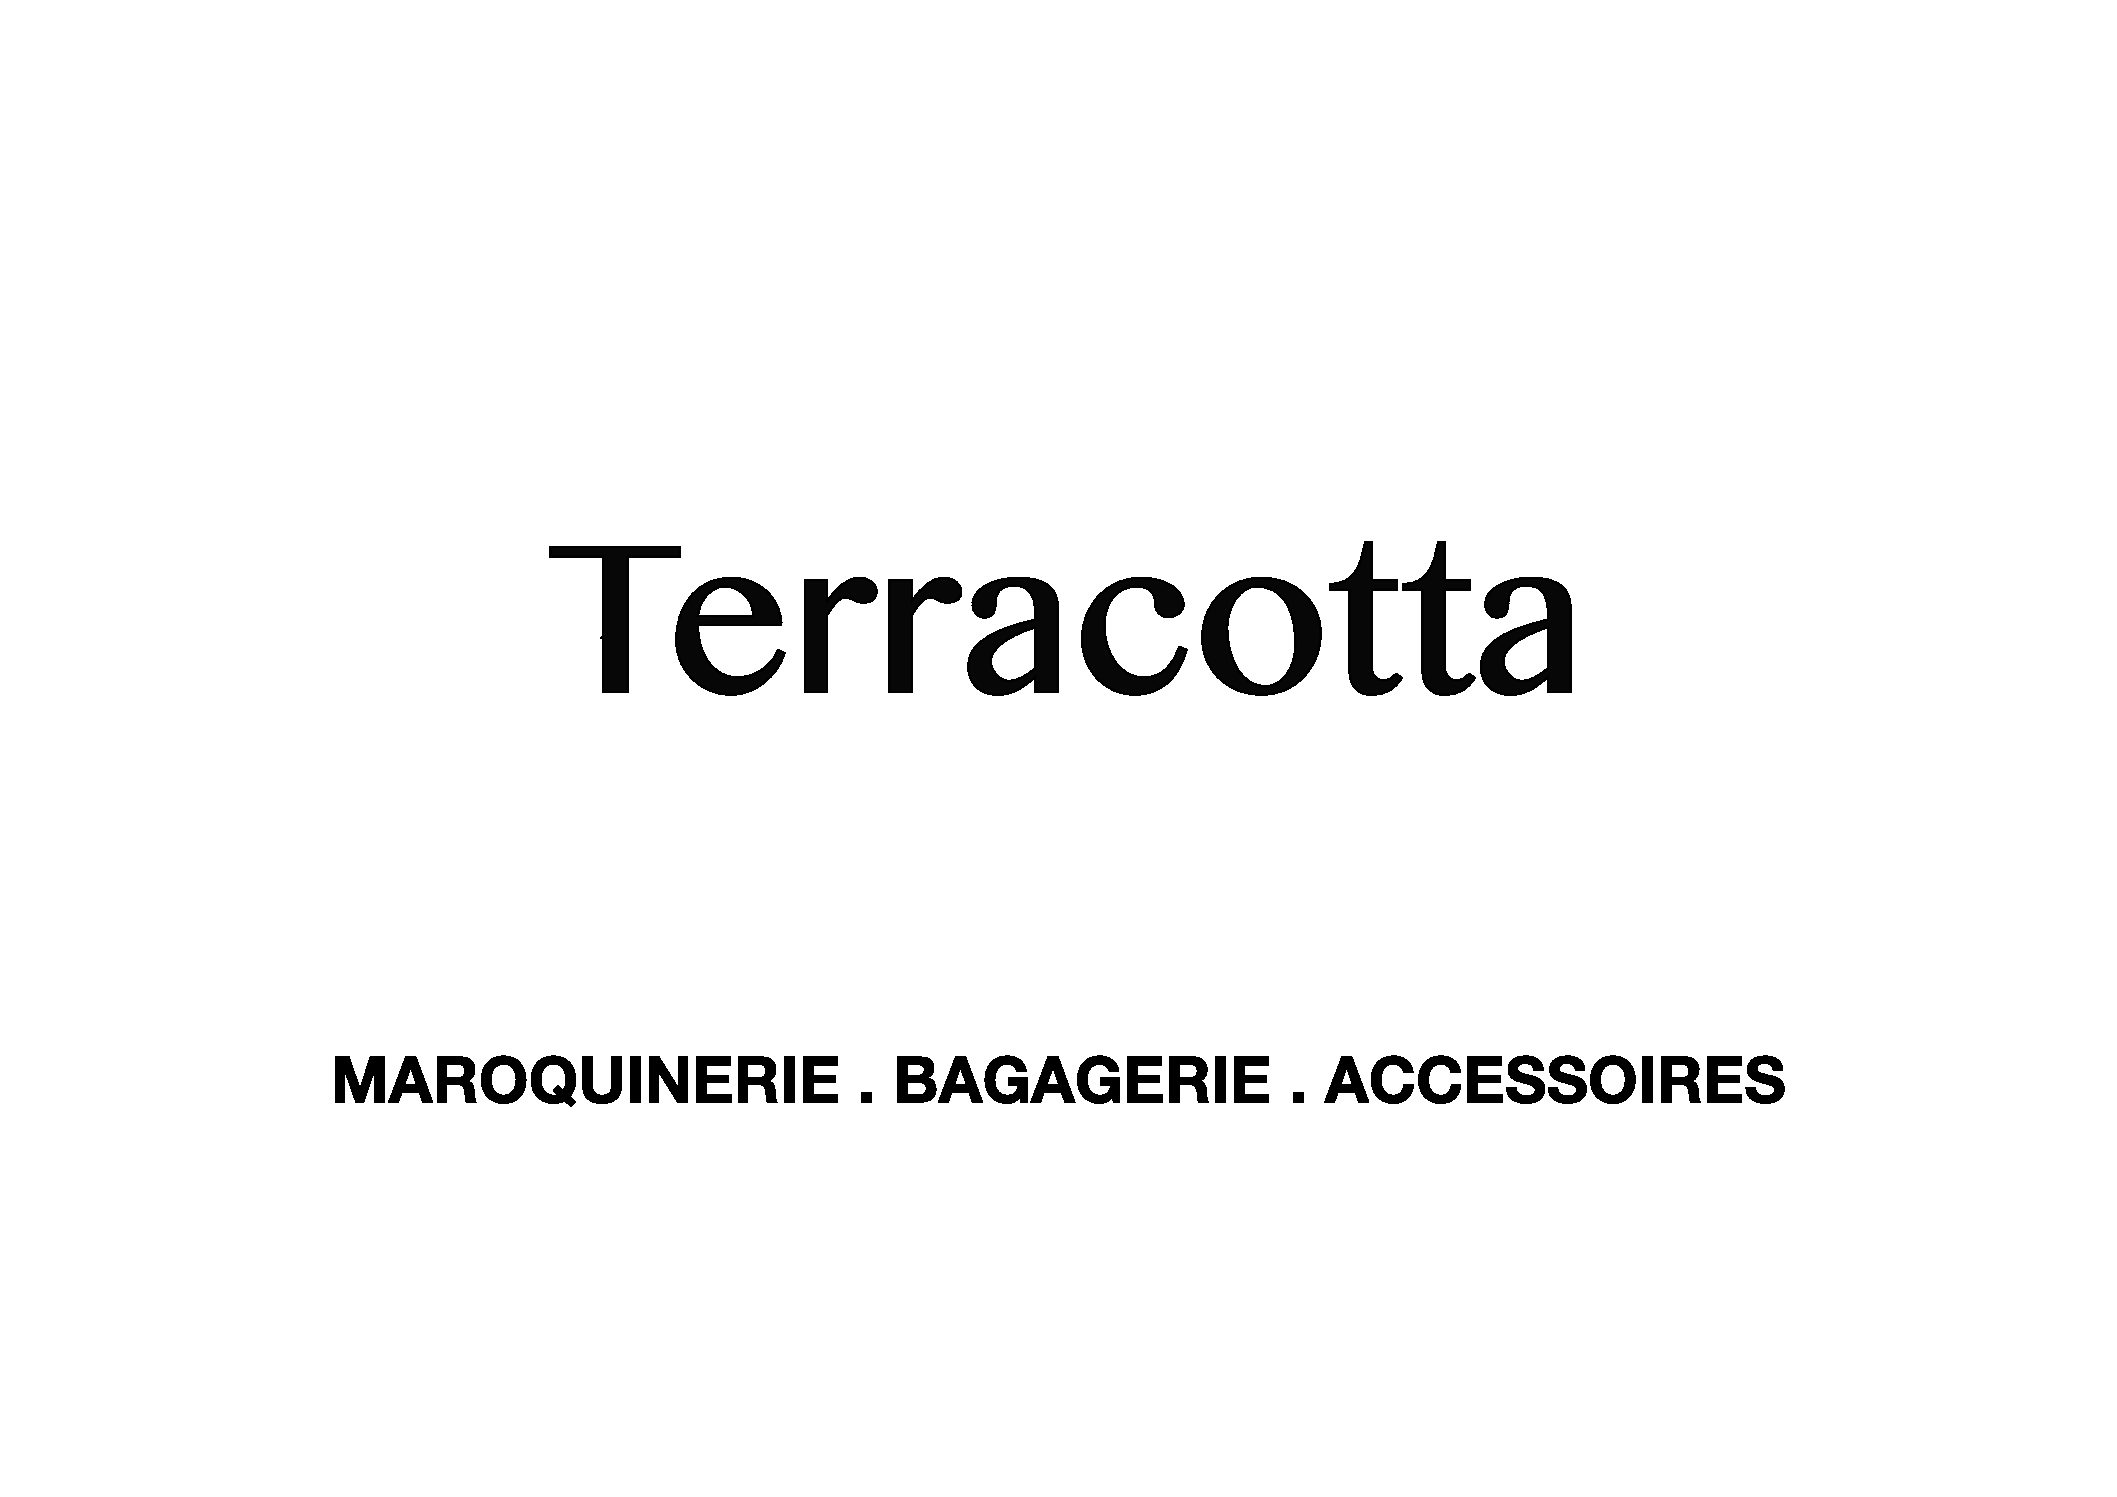 https://centrecommercialcarrefour.fr/wp-content/uploads/sites/24/2014/10/terracotta-1-1-pdf.jpg